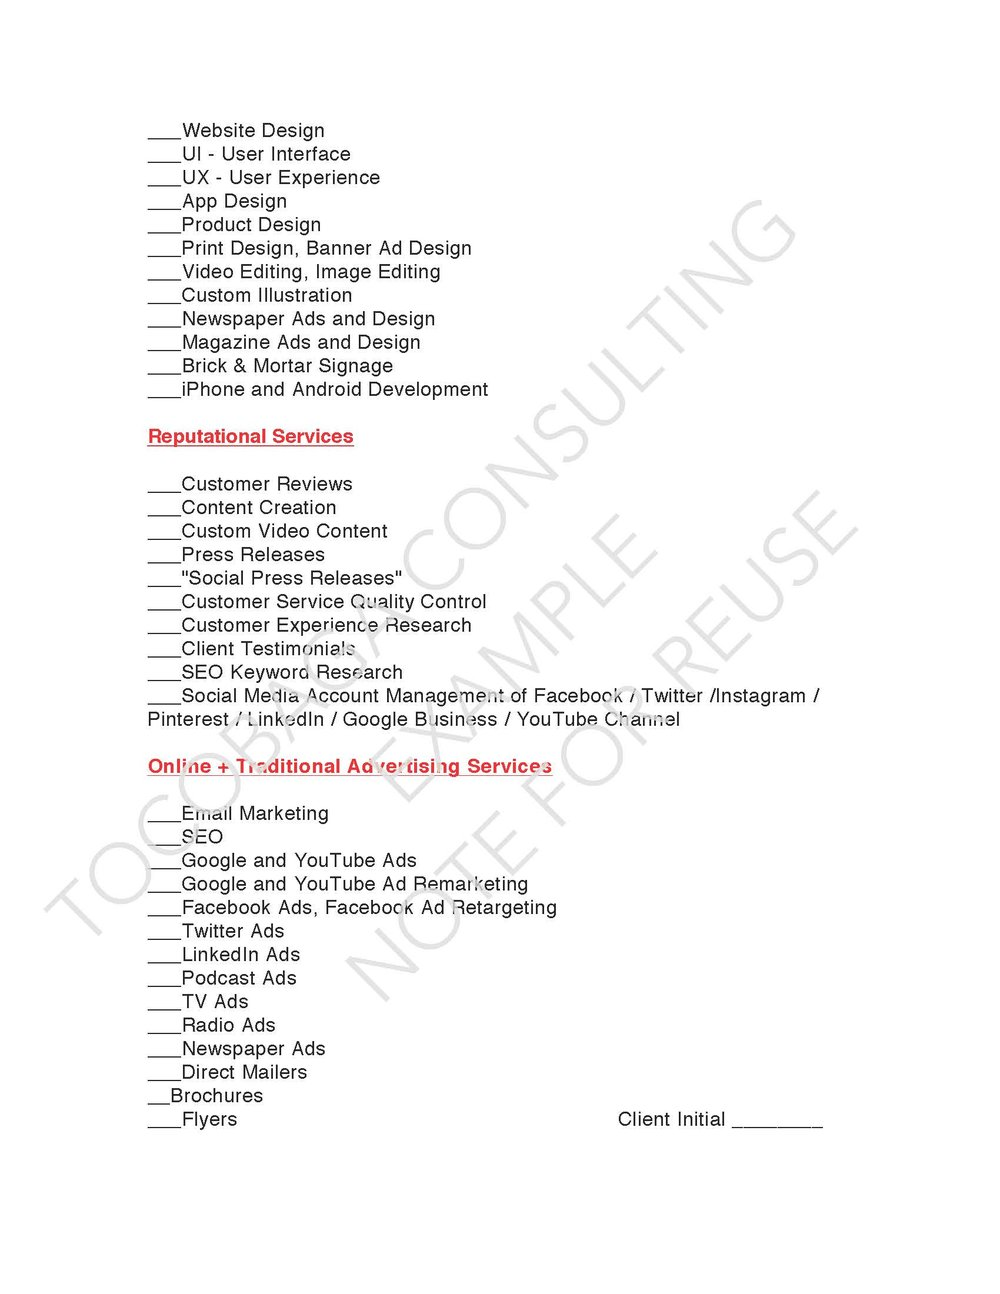 Company Services Agreement EXAMPLE_Page_11.jpg